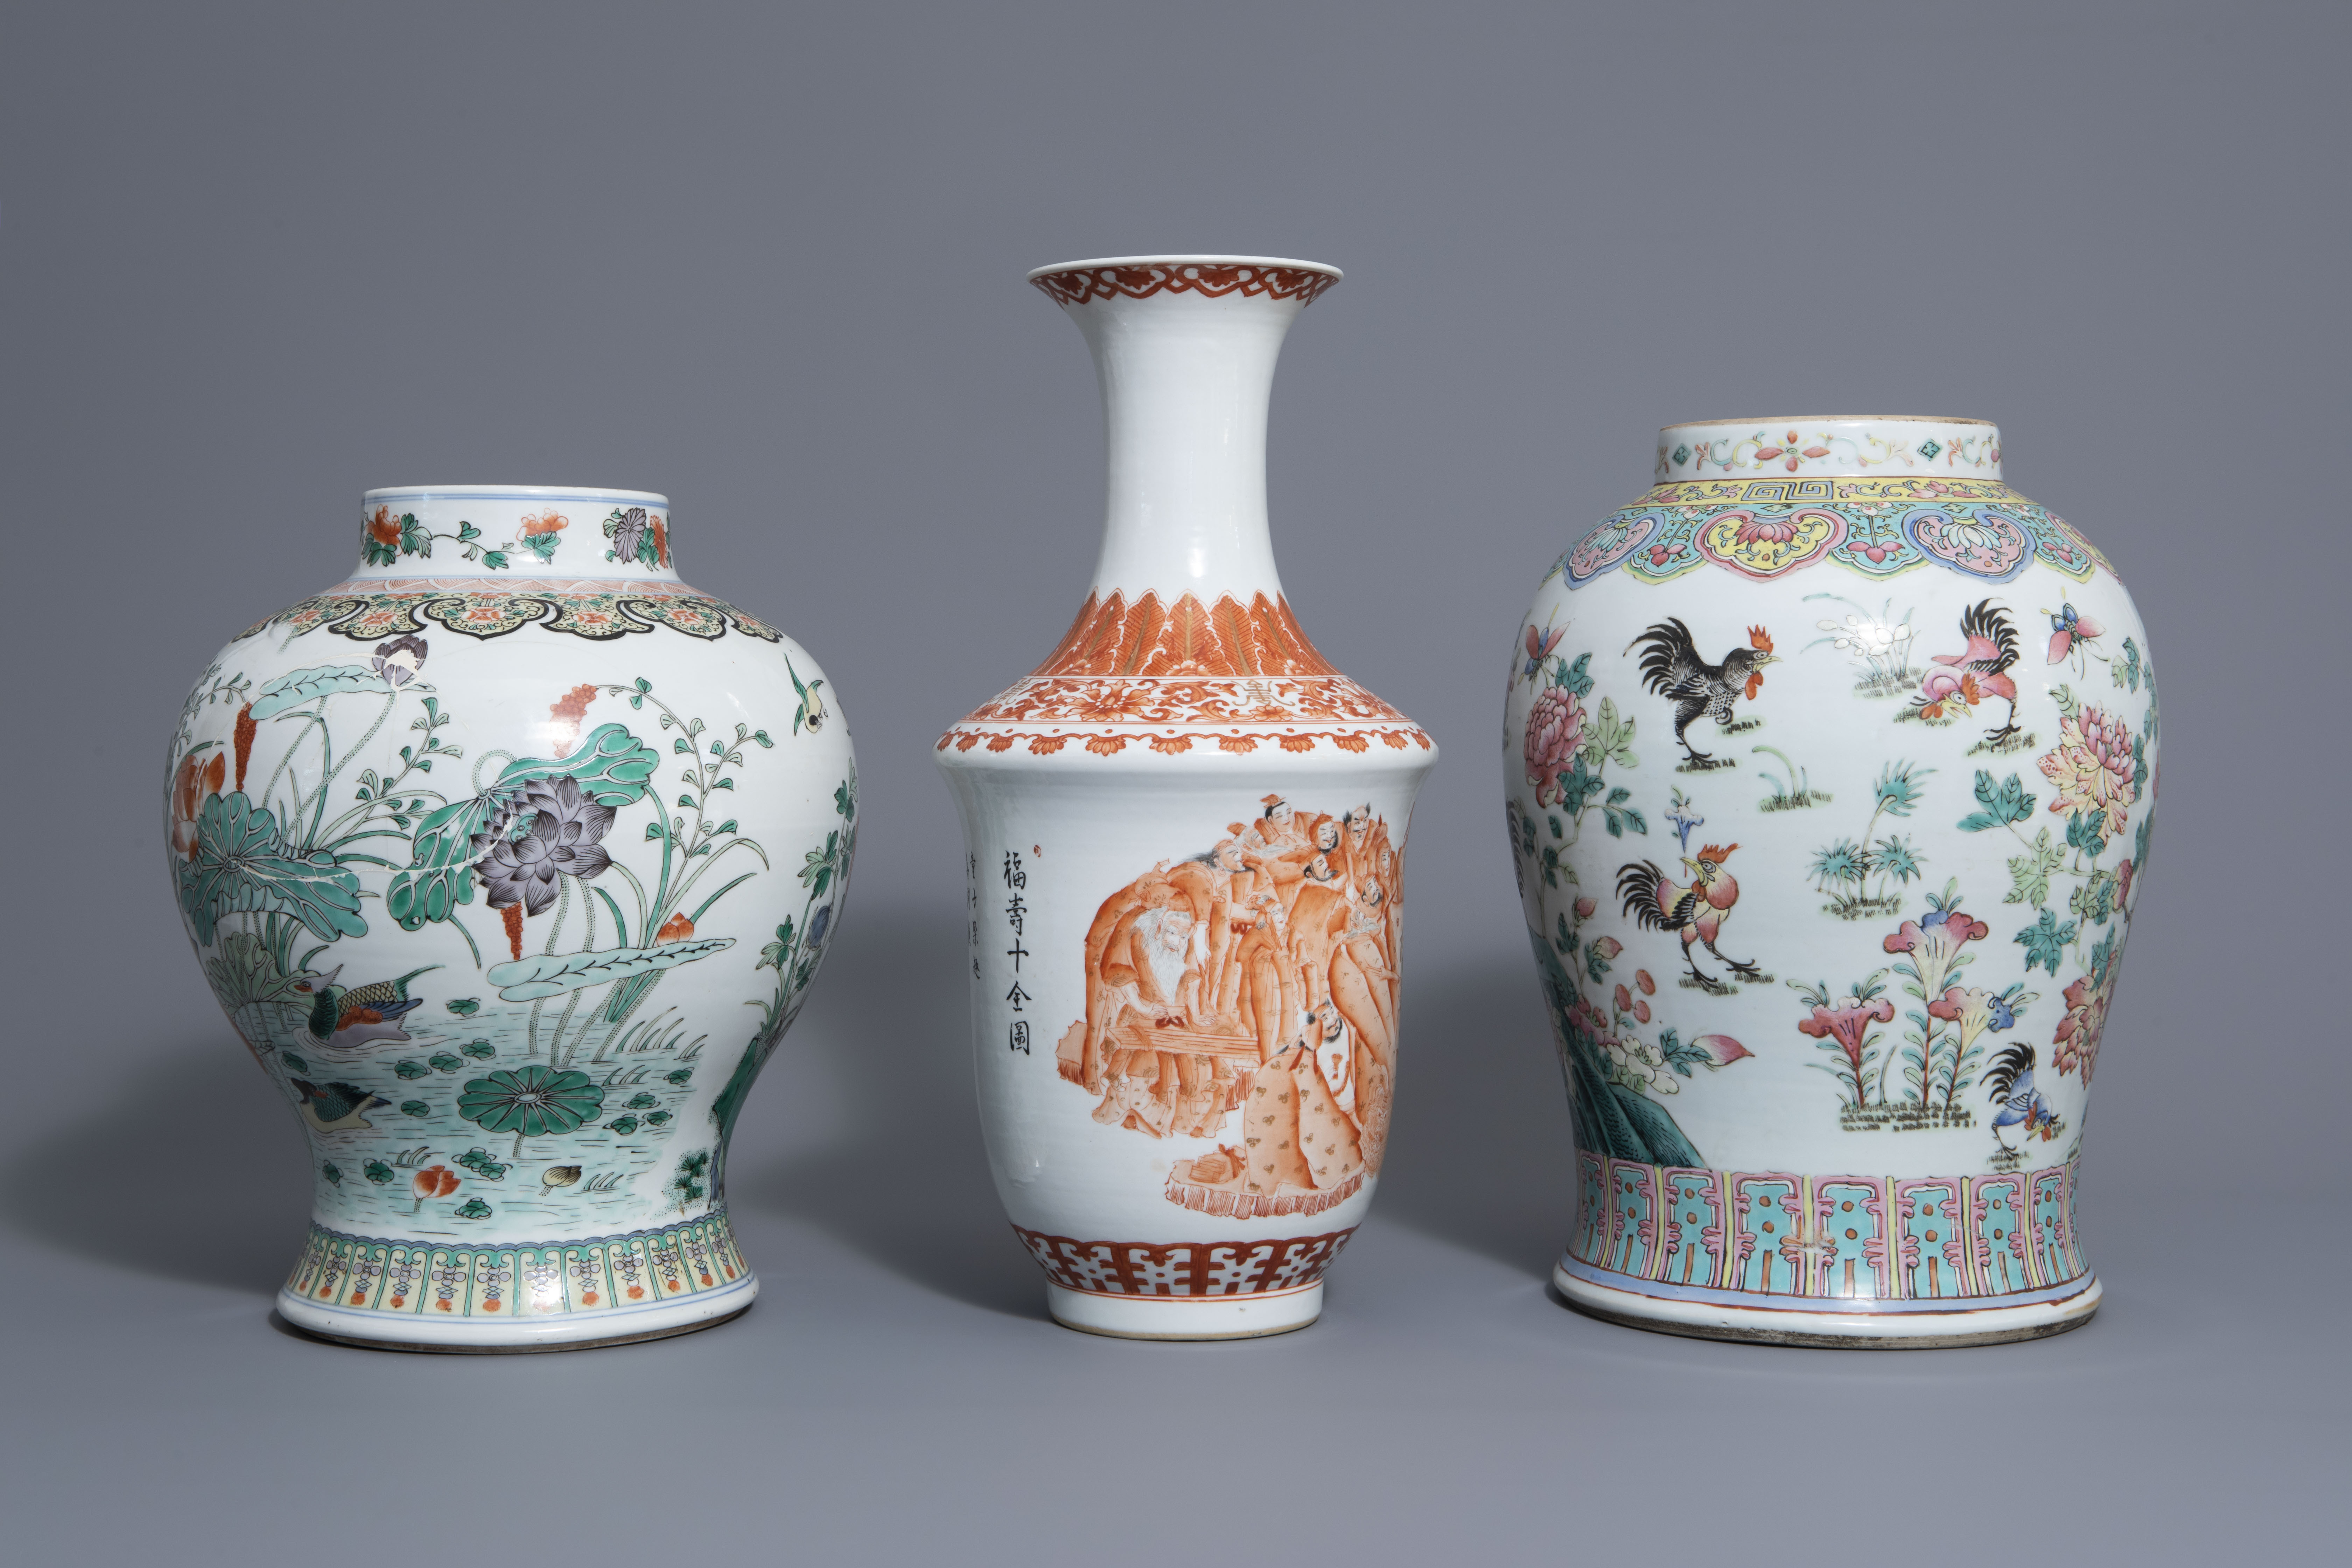 Three Chinese famille rose, verte and iron red vases with different designs, 19th/20th C. - Image 3 of 7